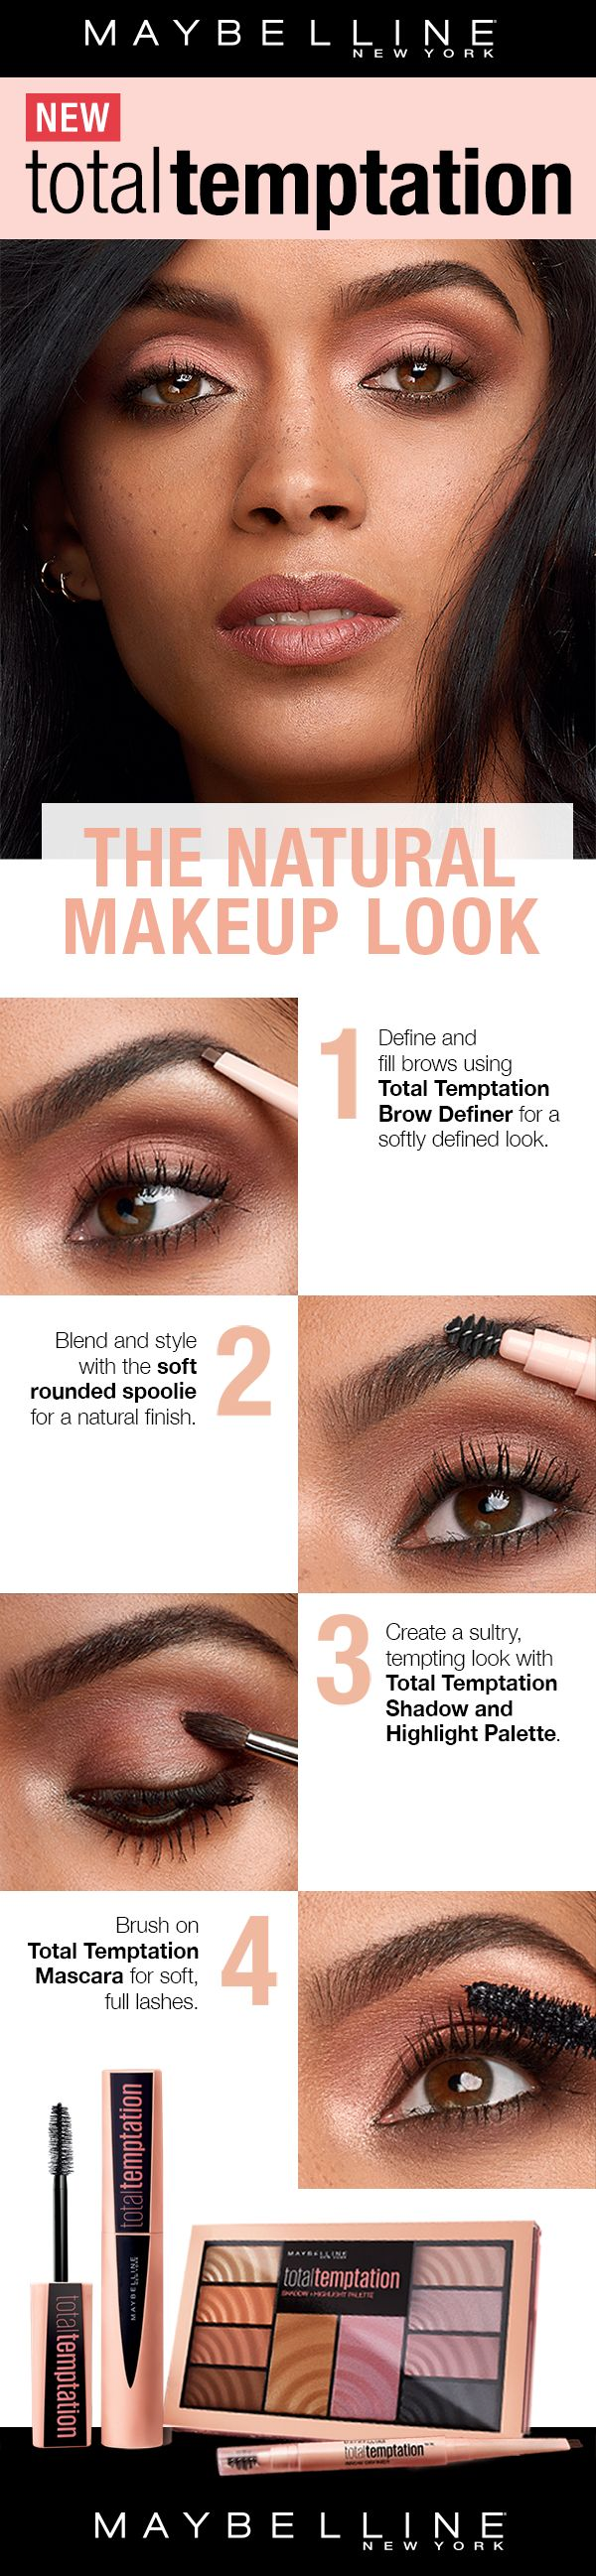 The most addictive makeup yet. Creamy color. Seductive scent. Ravishing results. Give in to Total Temptation. Featuring a Eyeshadow and Highlighter palette, a brow definer and a coconut-scented mascara. Use the Brow Definer for soft, natural looking brows. Create a natural eyeshadow look with the palette. Get voluminous and soft lashes with the mascara.